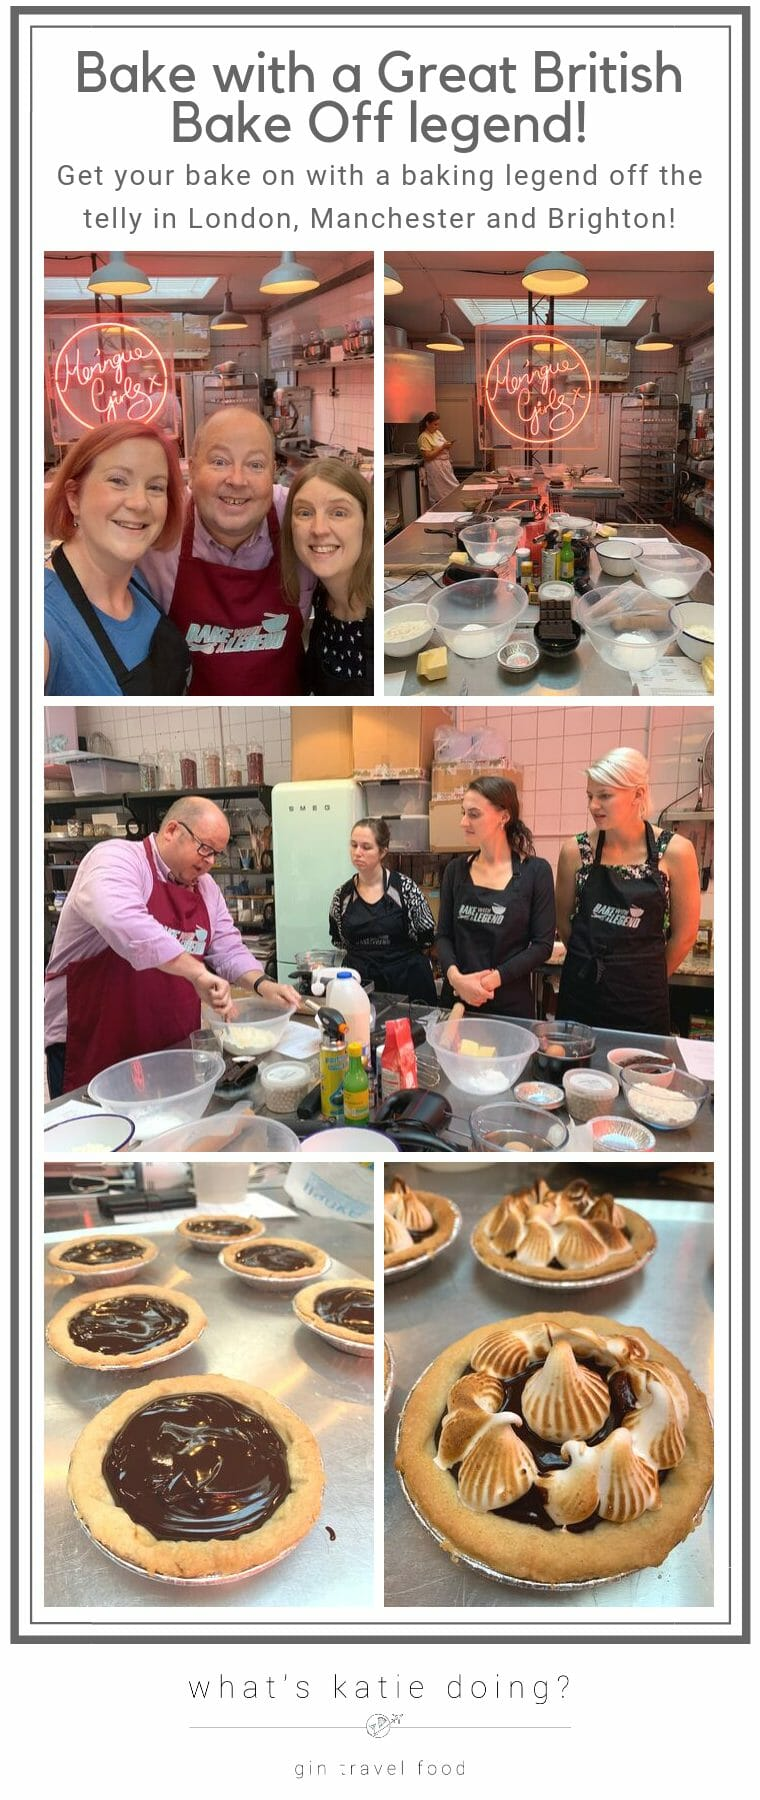 Bake with a Great British Bake Off Legend in London